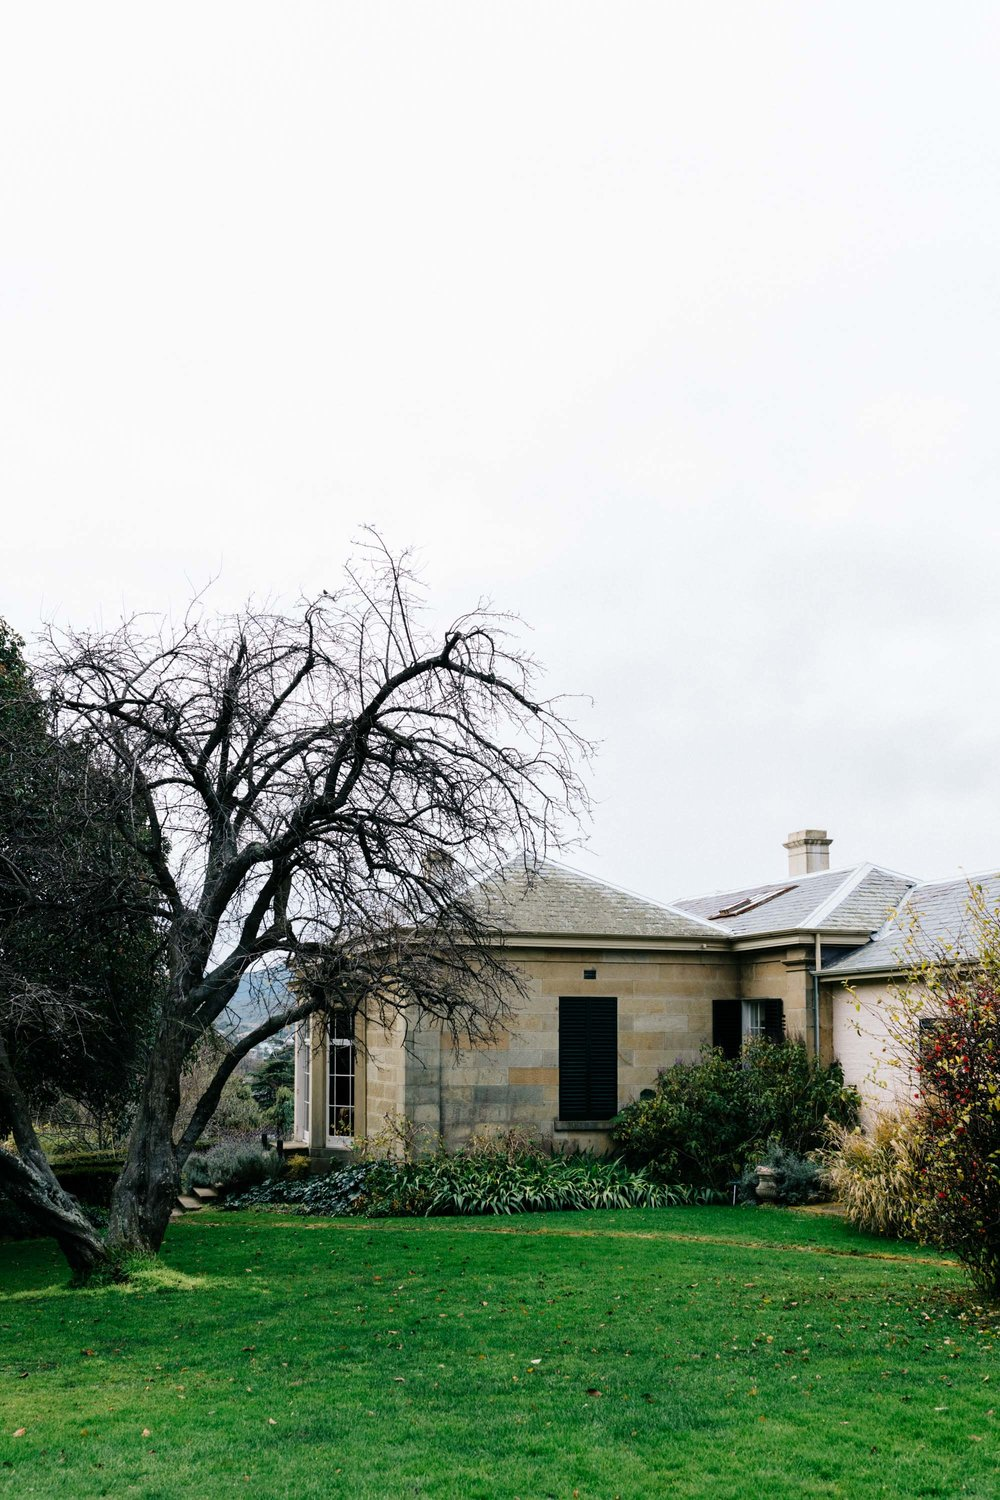 Marnie Hawson, Melbourne interior photography for Runnymede, Tasmania and The National Trust